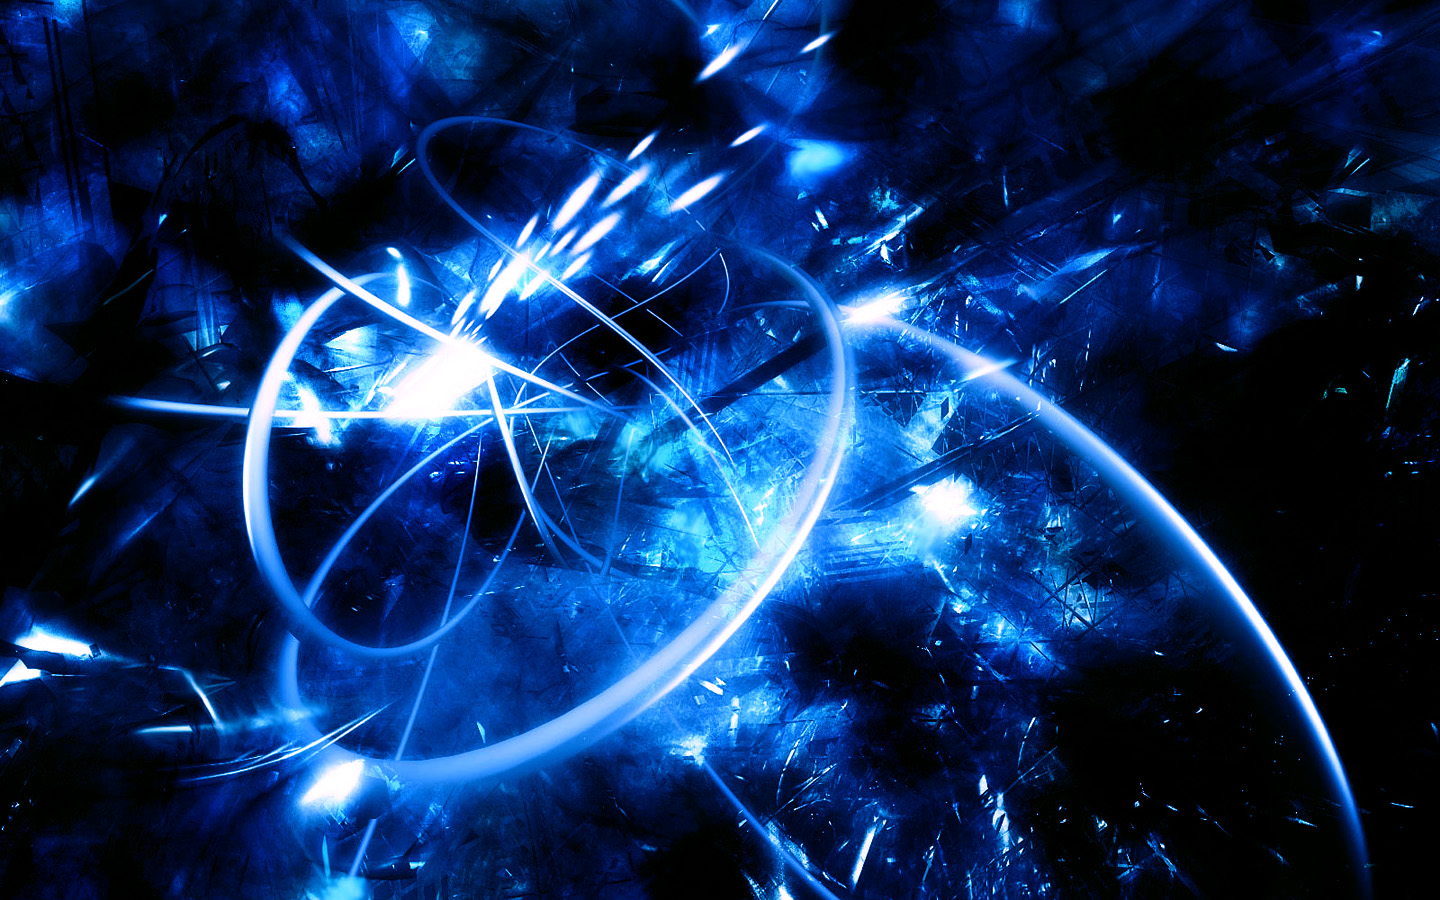 Amazing Abstract Blue Dark Hd Wallpaper Viewer